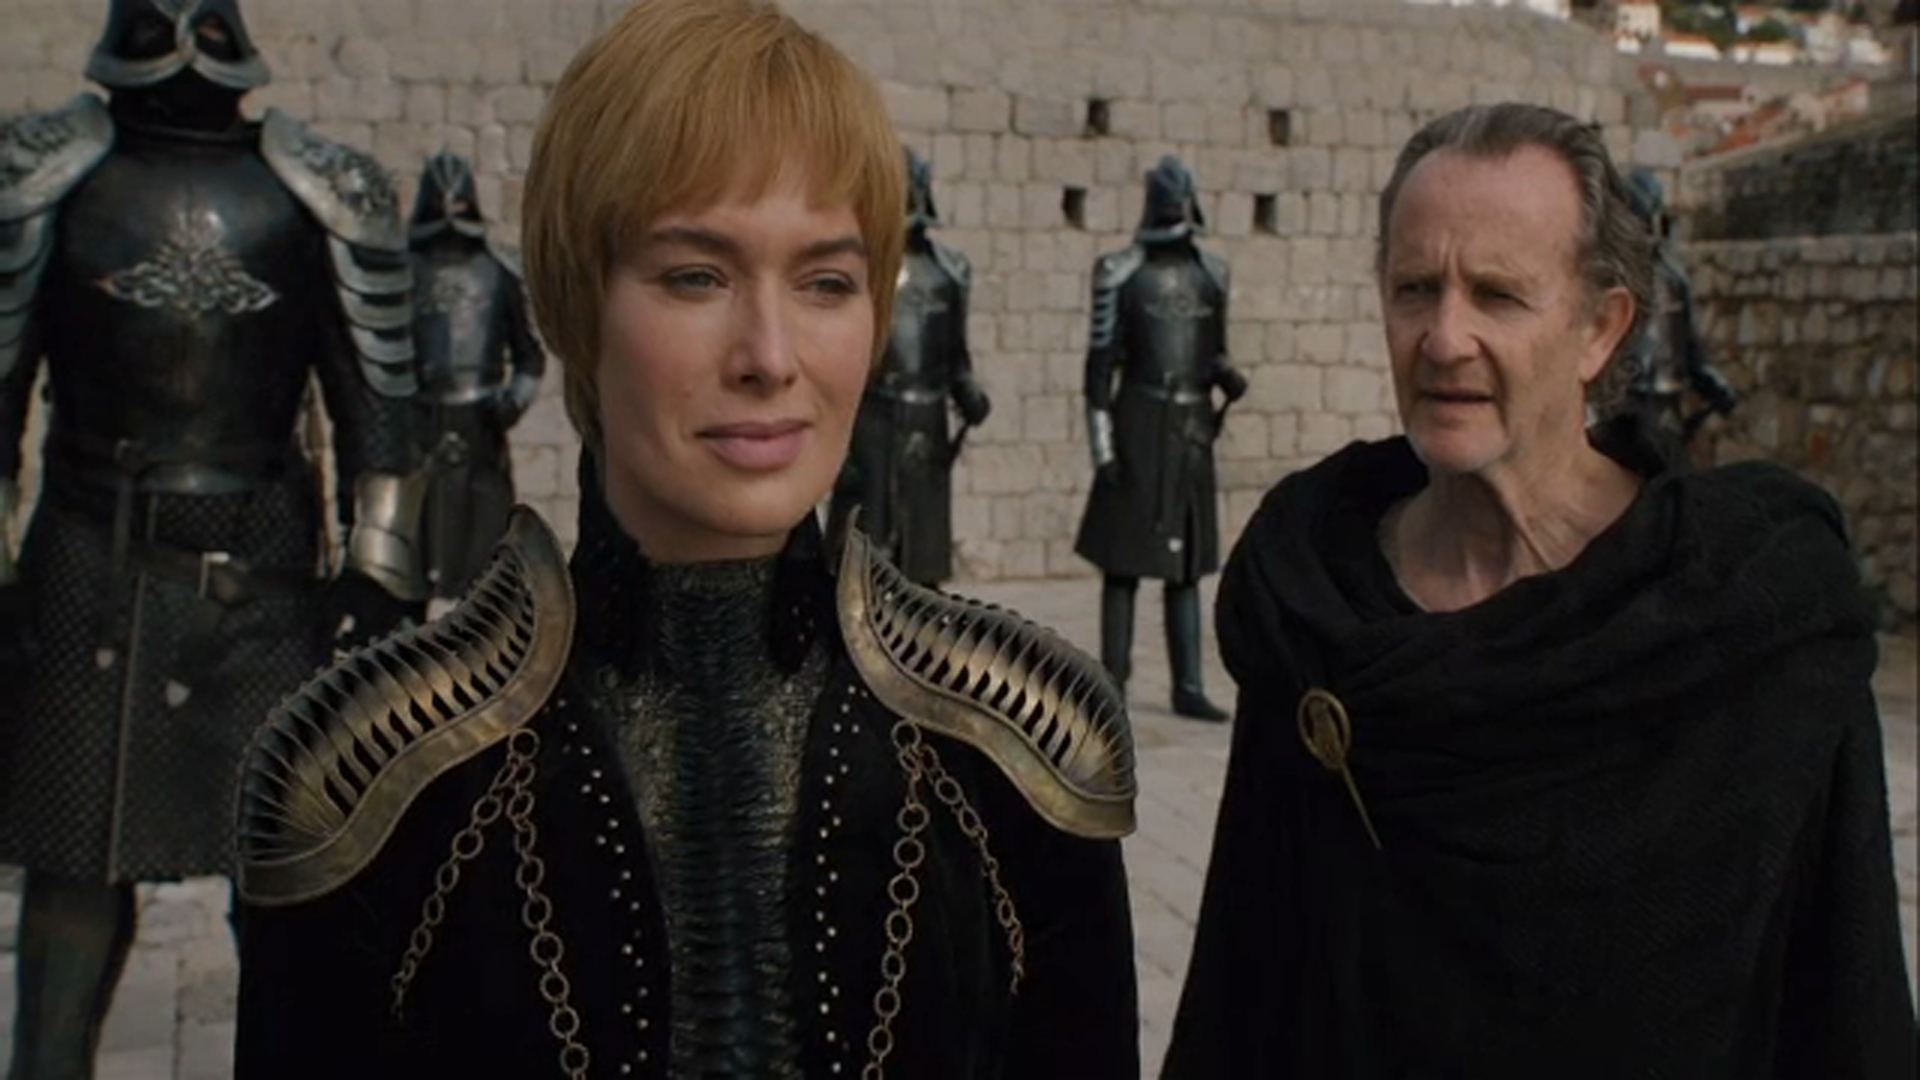 'Game of Thrones' fans scramble to find replica throne in ...